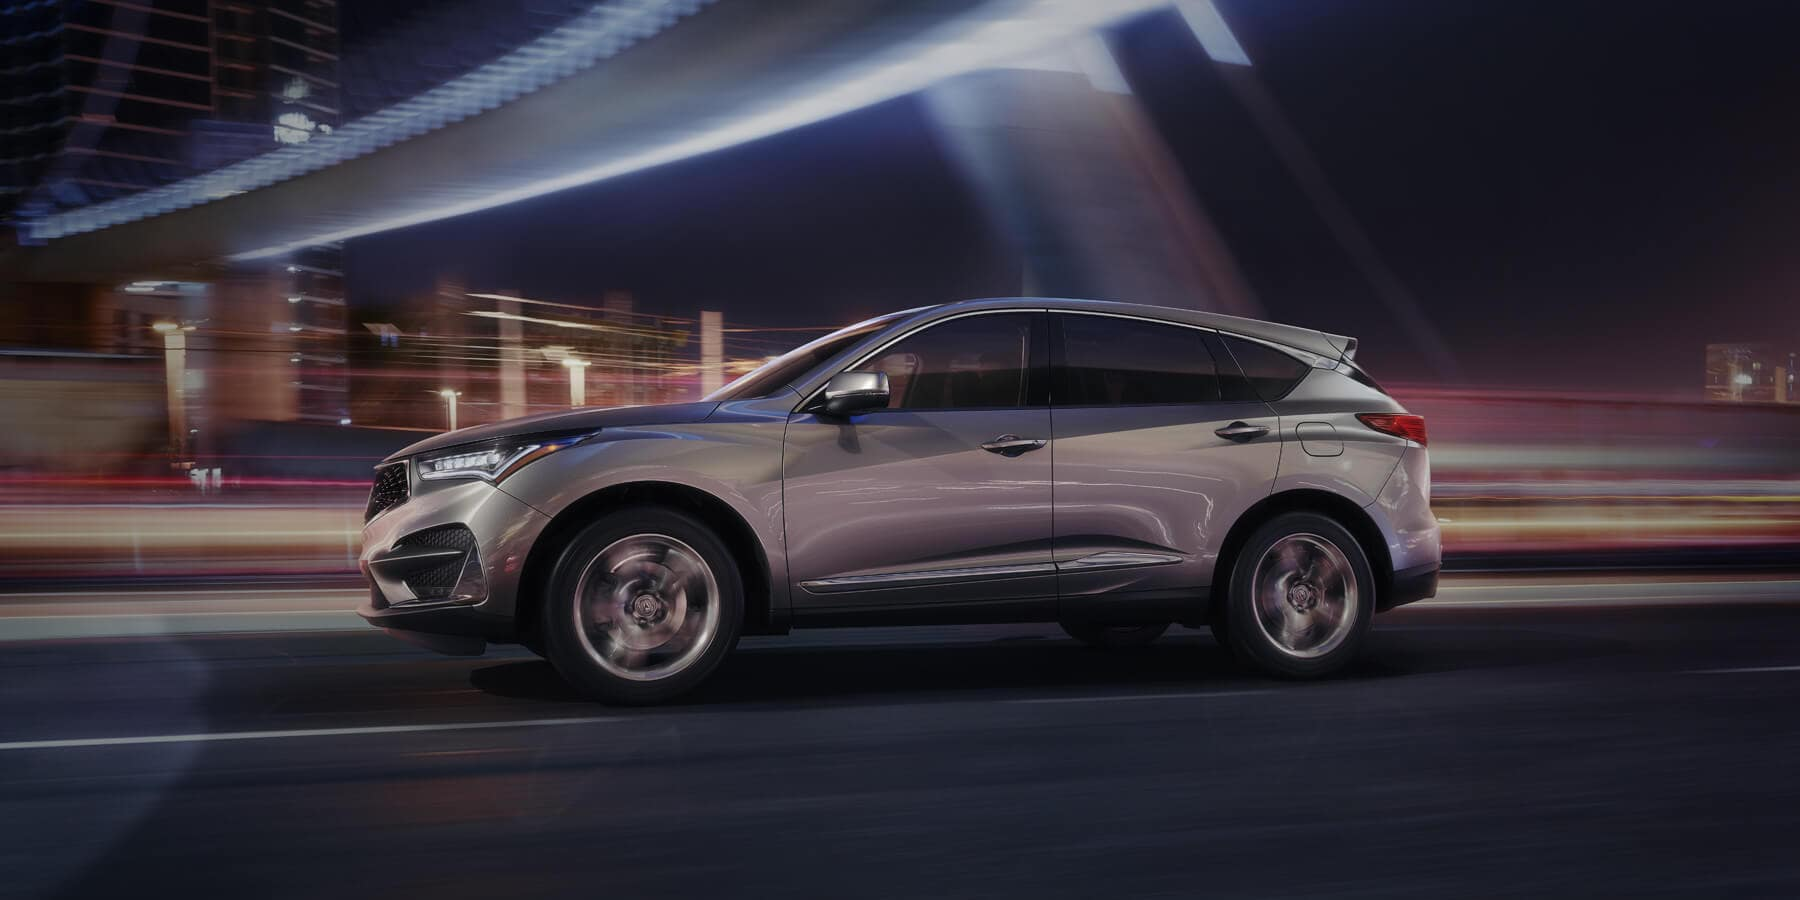 2020 Acura RDX Lunar Silver Metallic Side Profile Night